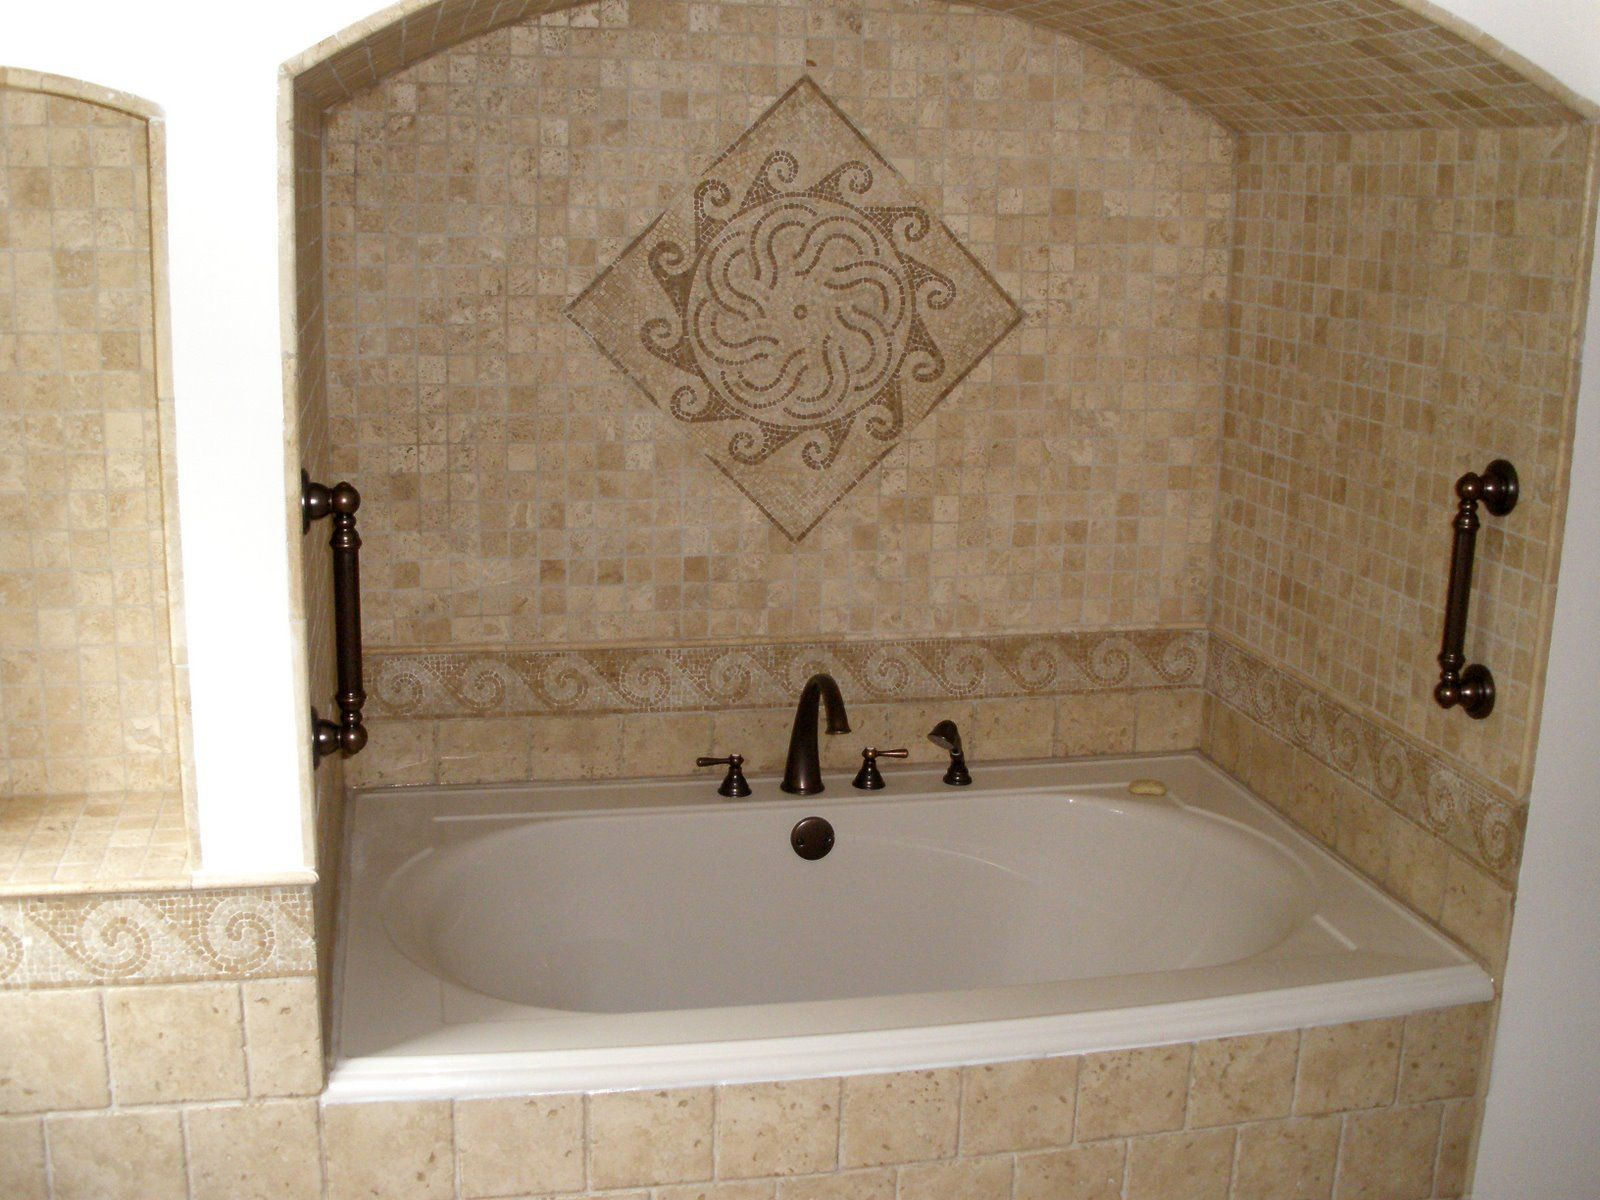 Bathroom tile design gallery images of bathrooms shower for Images of bathroom tile ideas